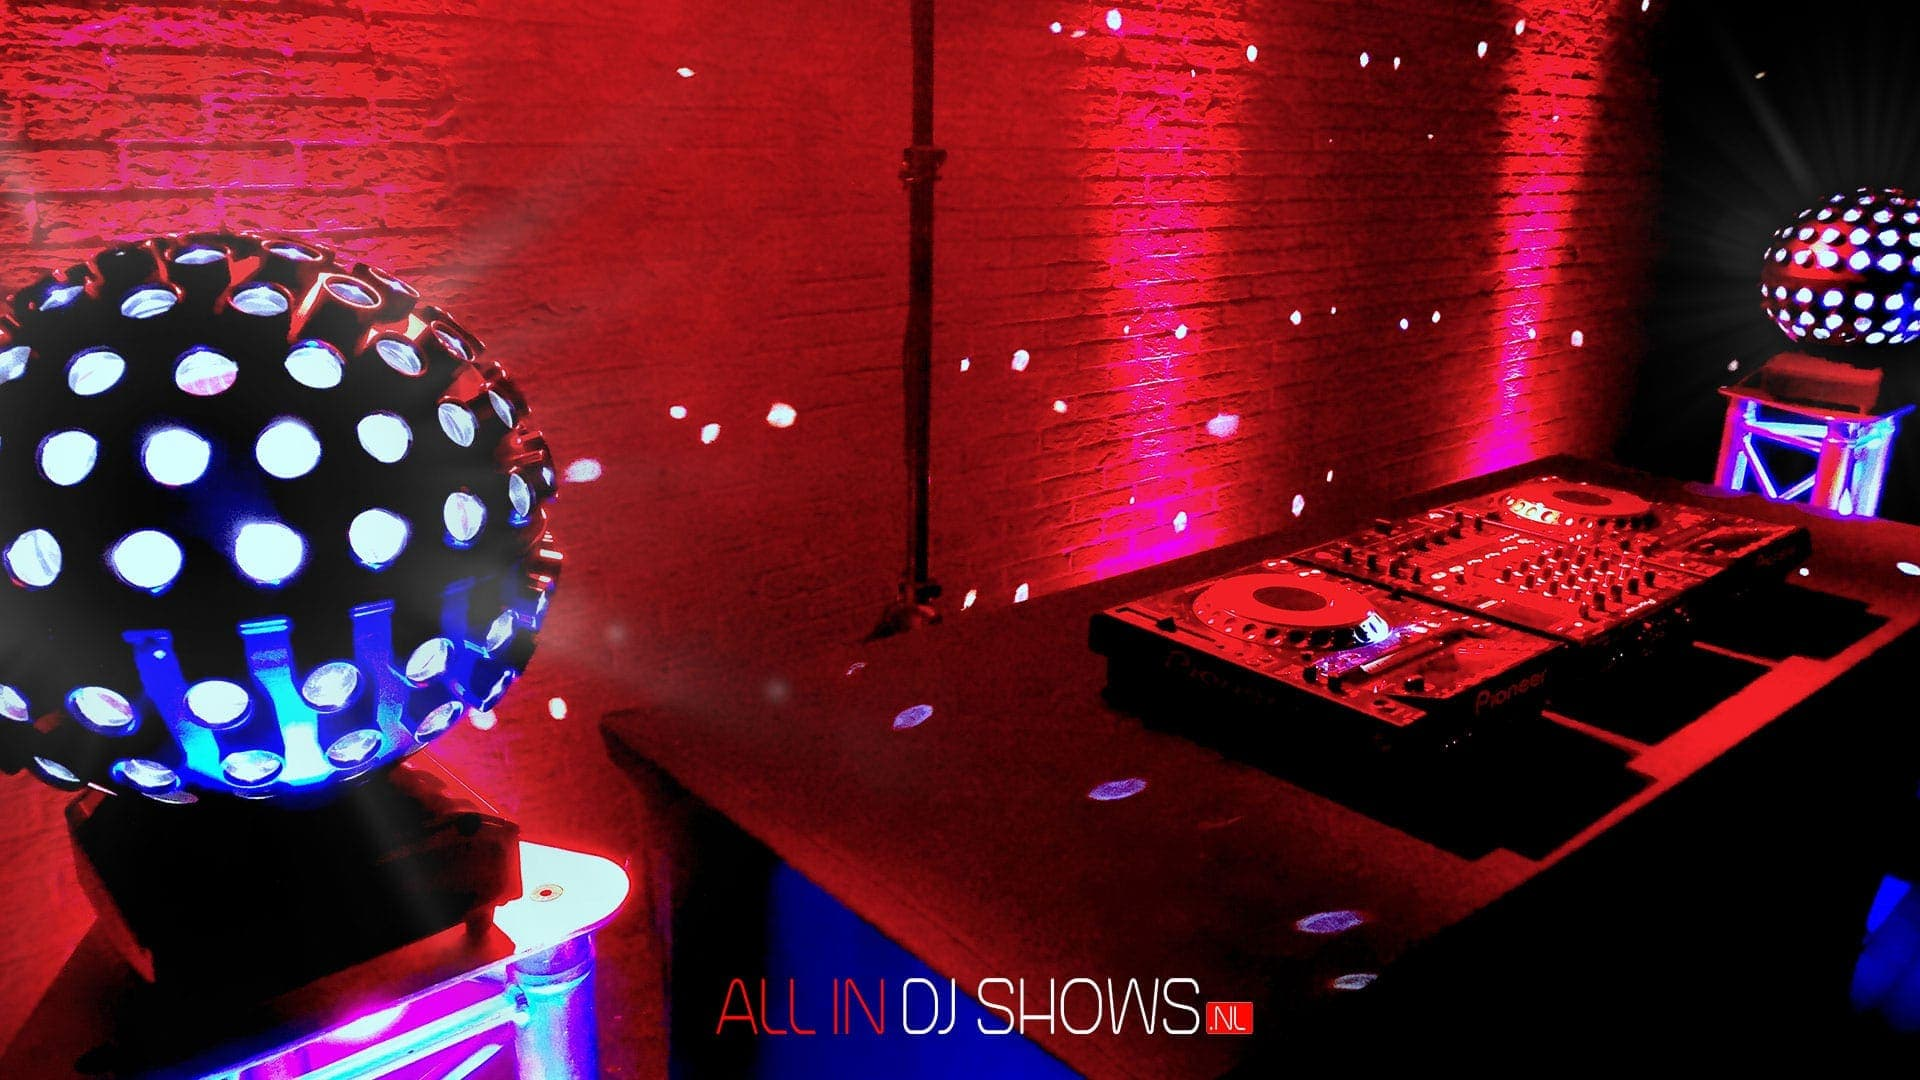 All-in-DJ-Show-Regular-standard-3